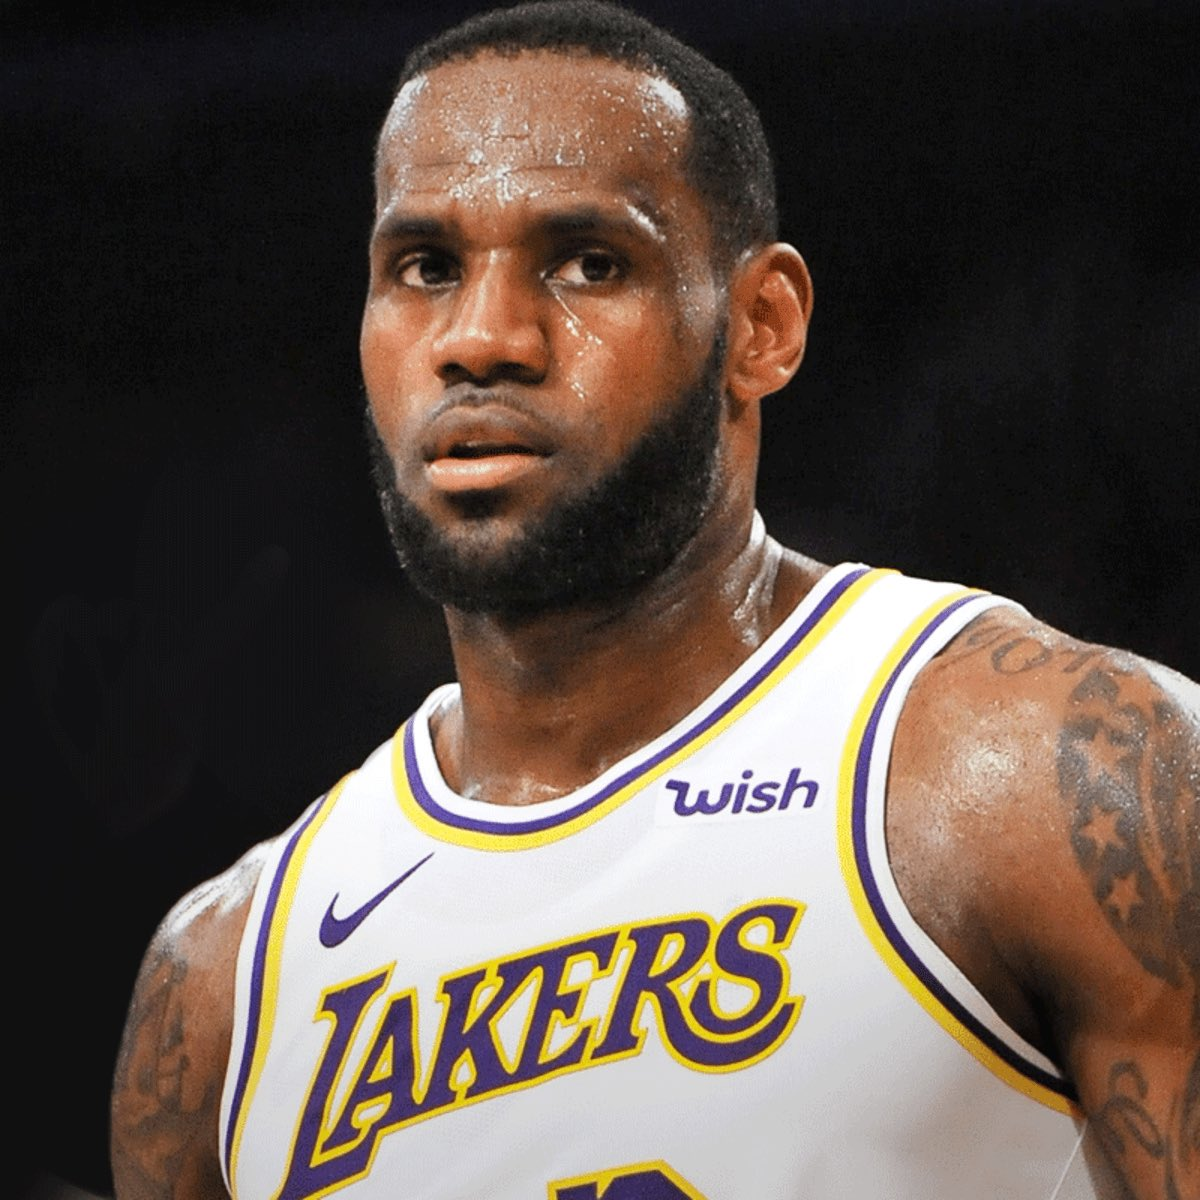 """""""When I've lost in the Finals, the better team won.""""  - LeBron James on his finals record  (h/t @5ReasonsSports ) https://t.co/QCbCsmSoiu"""